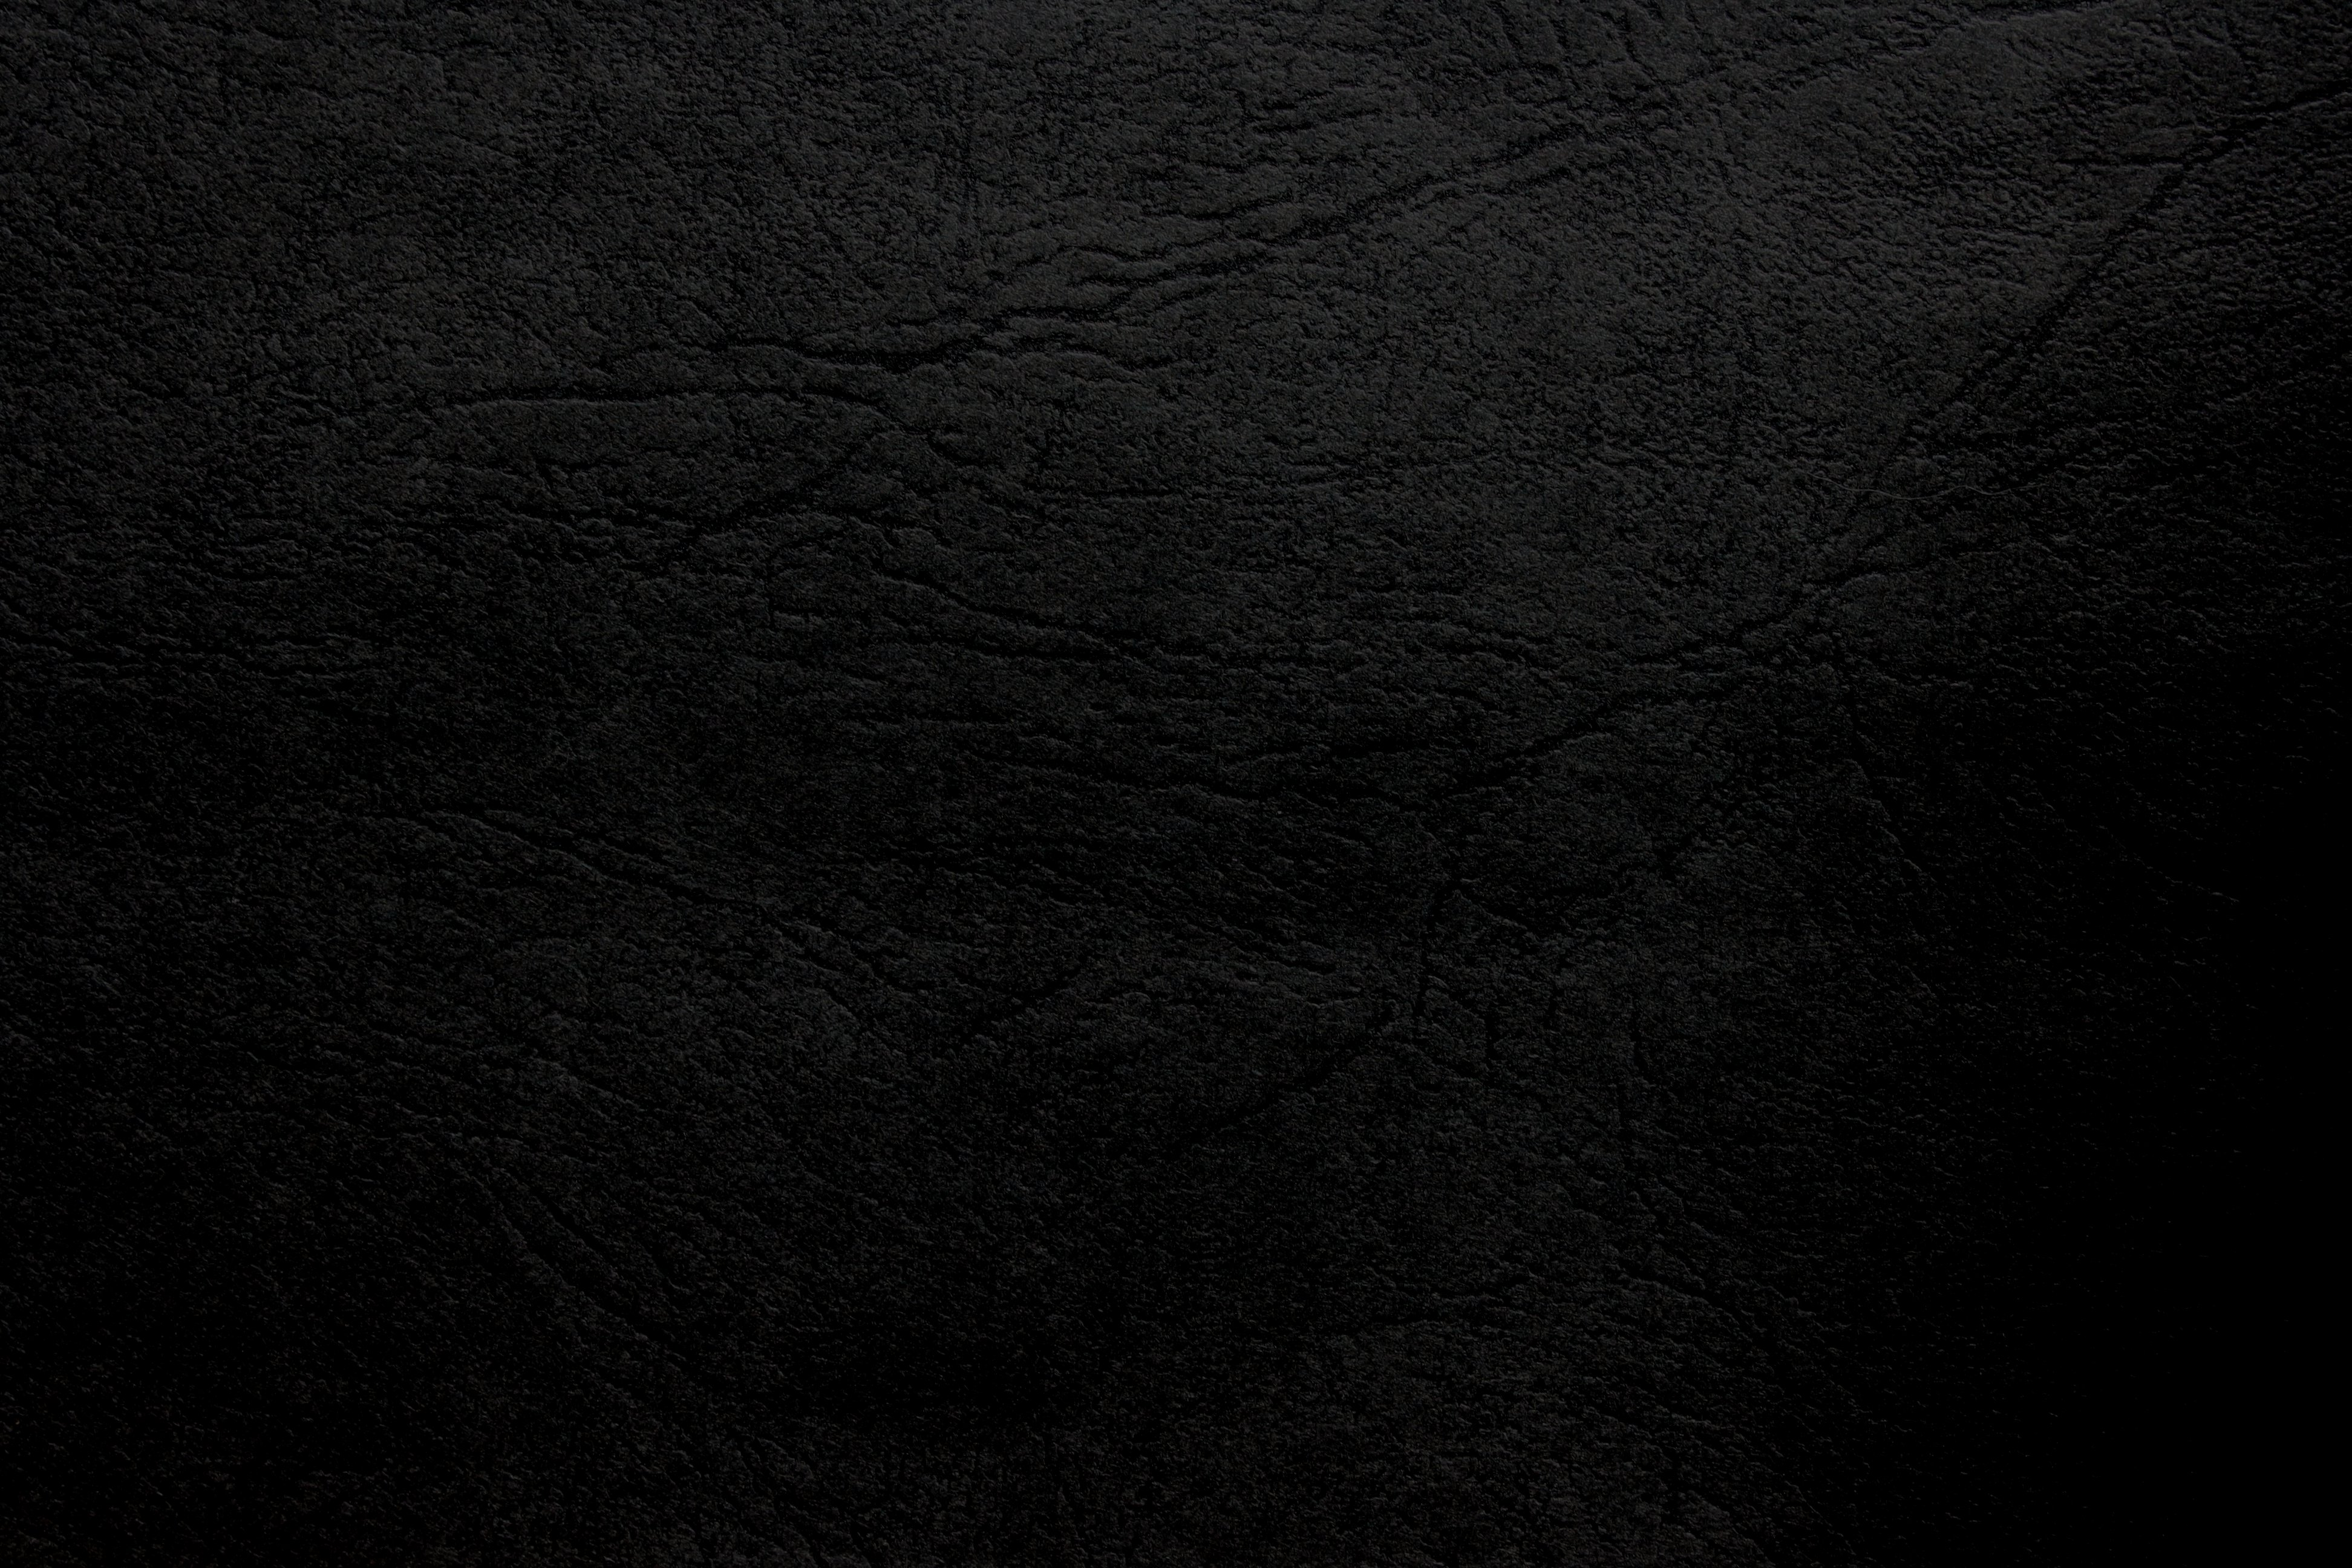 black texture wallpaper 2015   Grasscloth Wallpaper 3888x2592